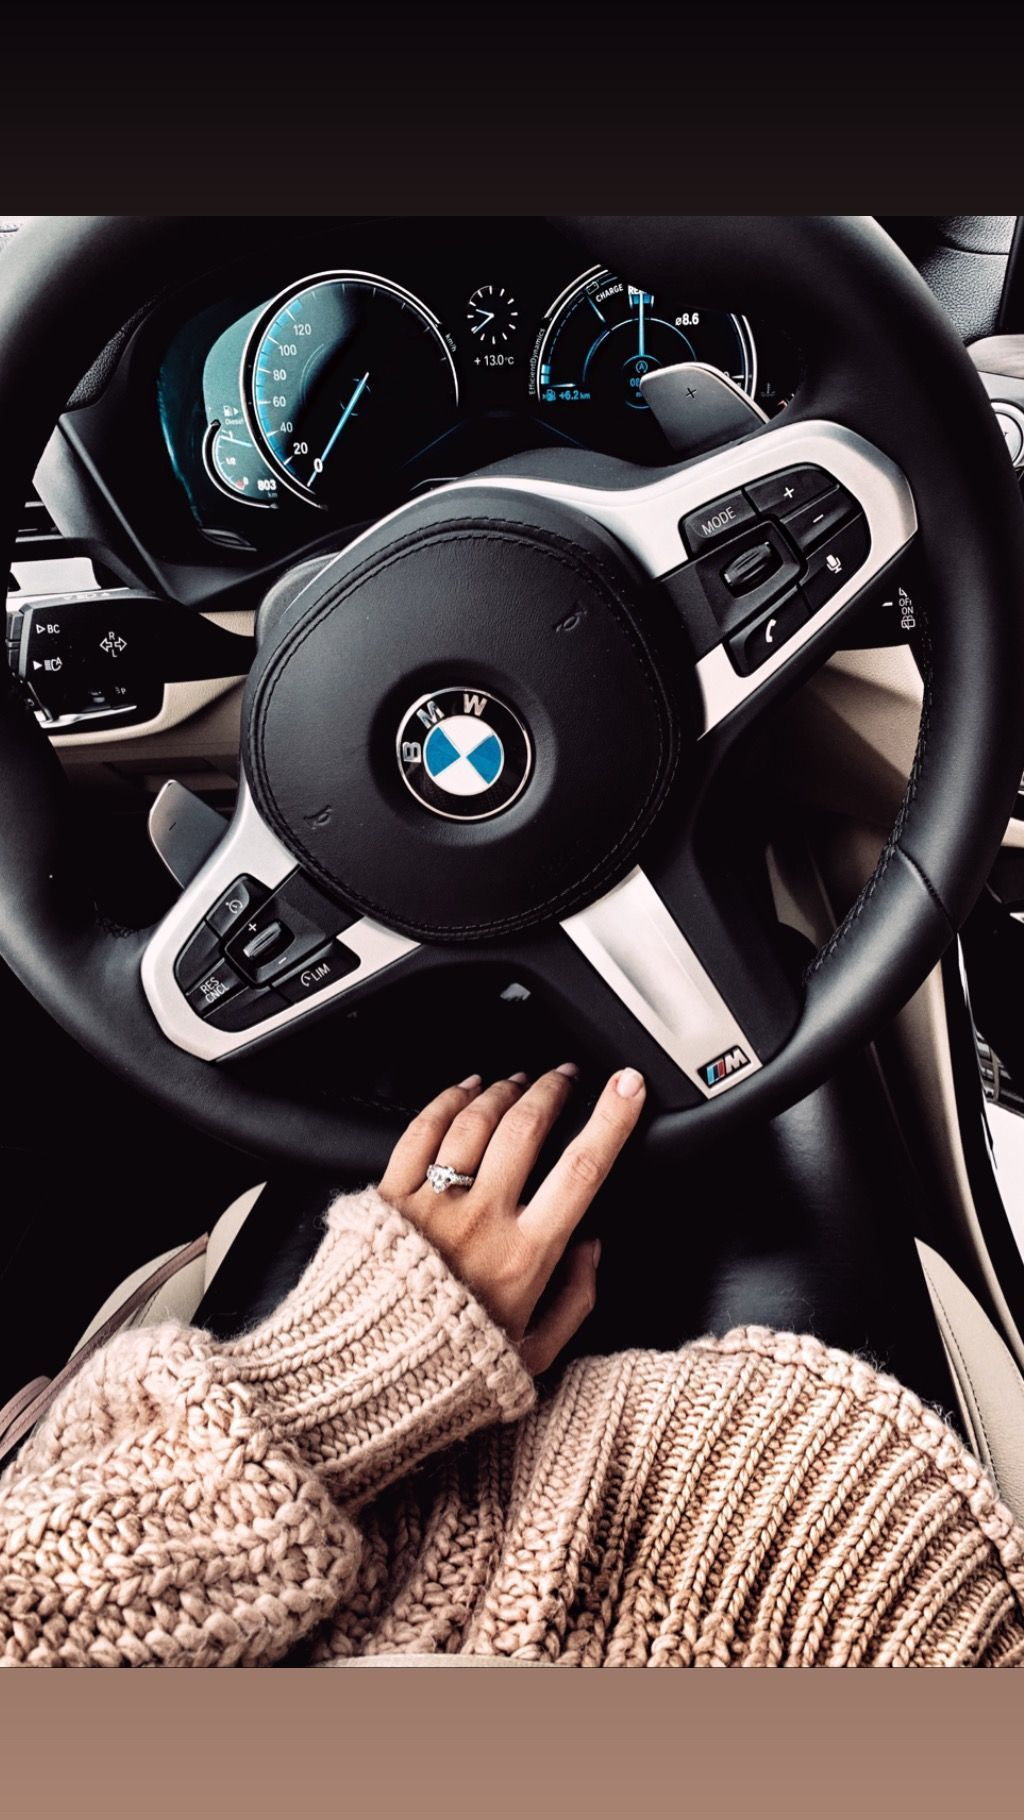 Bmw girl knitted pullover #topluxurycars Bmw girl knitted pullover